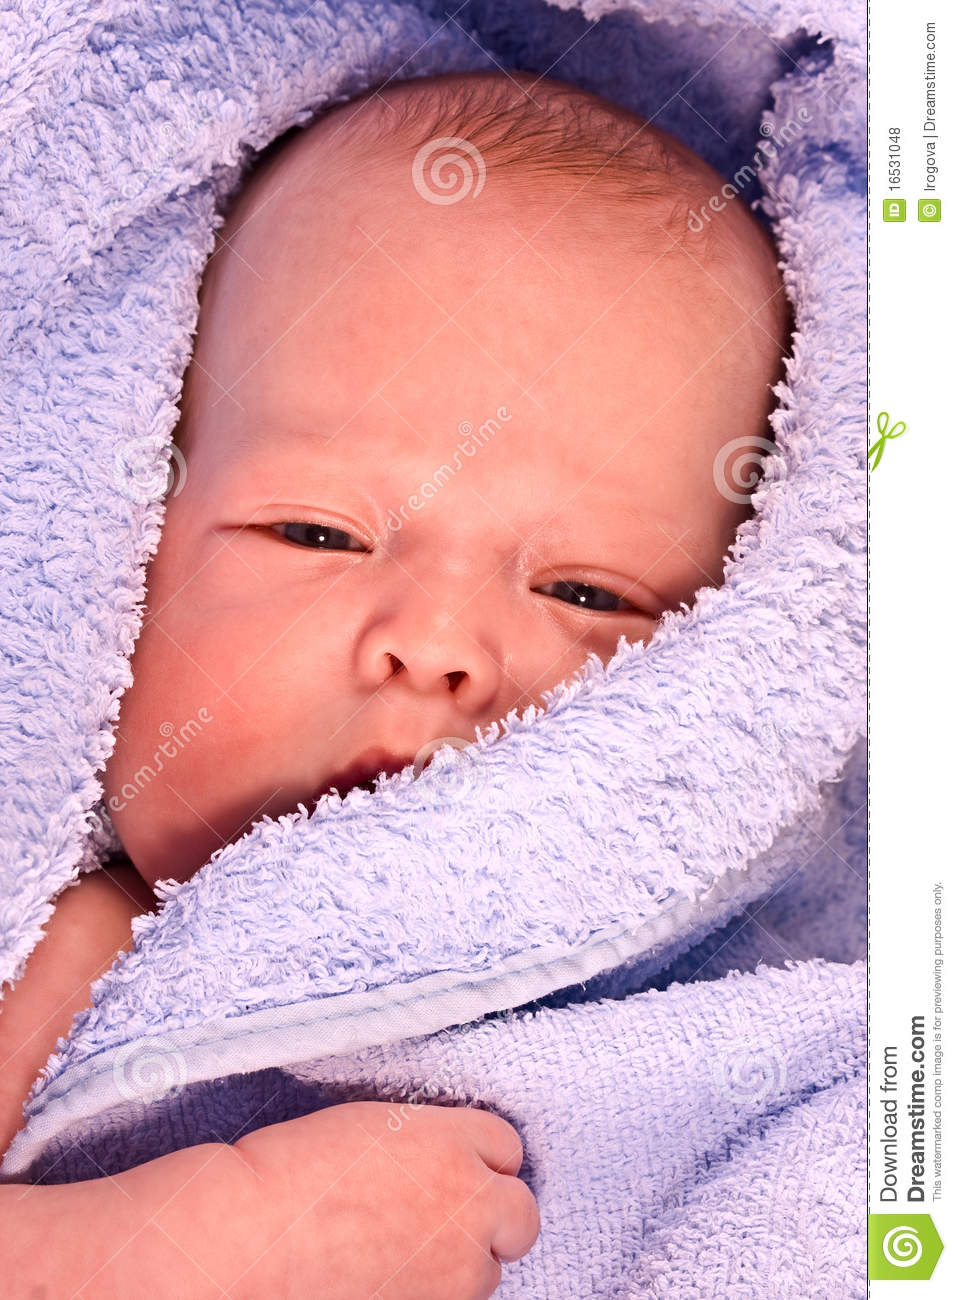 The Kid Who Has Been Wrapped Royalty Free Stock Photos